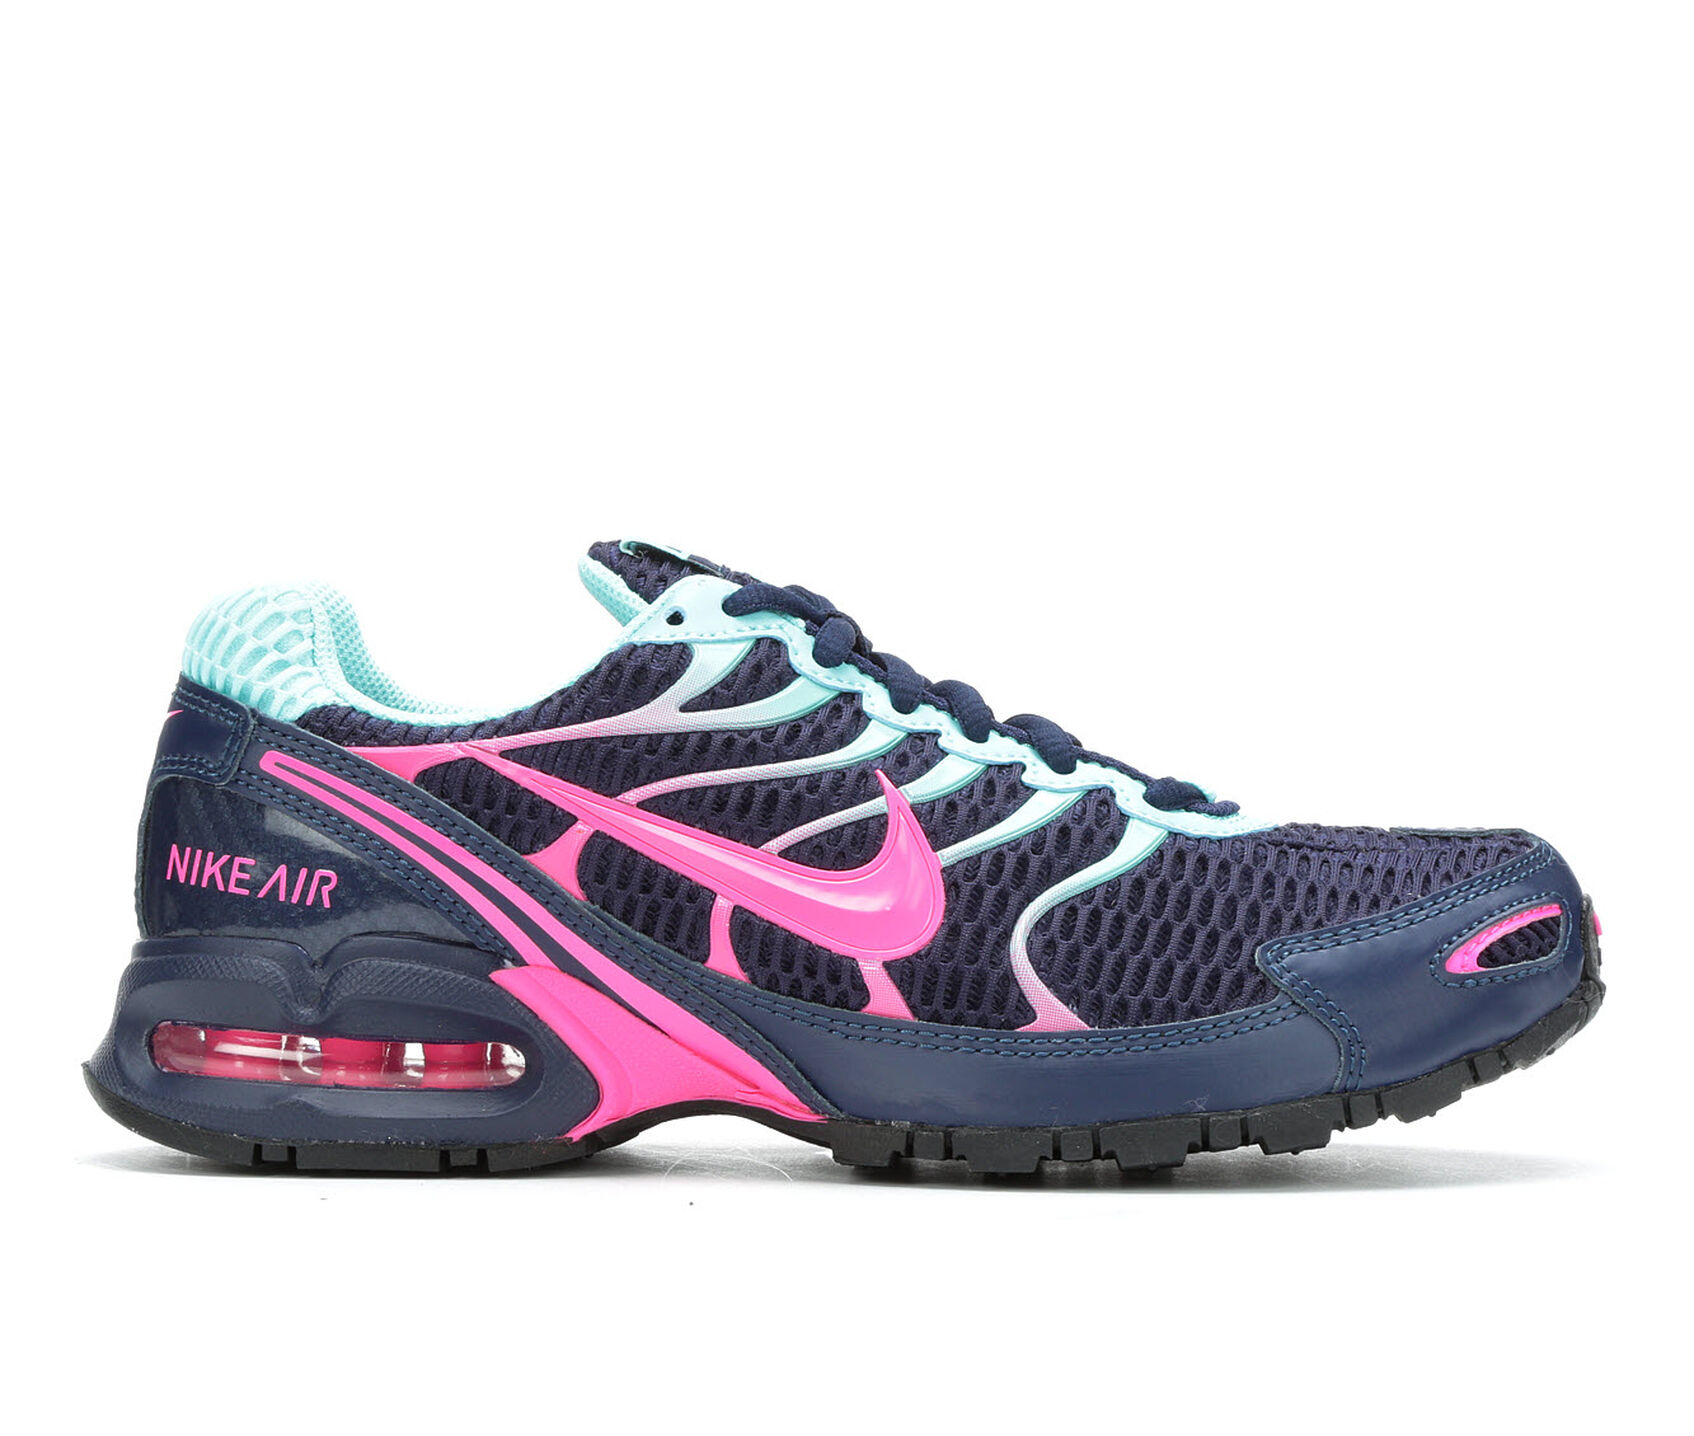 reputable site 35ea5 59cc3 Women's Nike Air Max Torch 4 Running Shoes